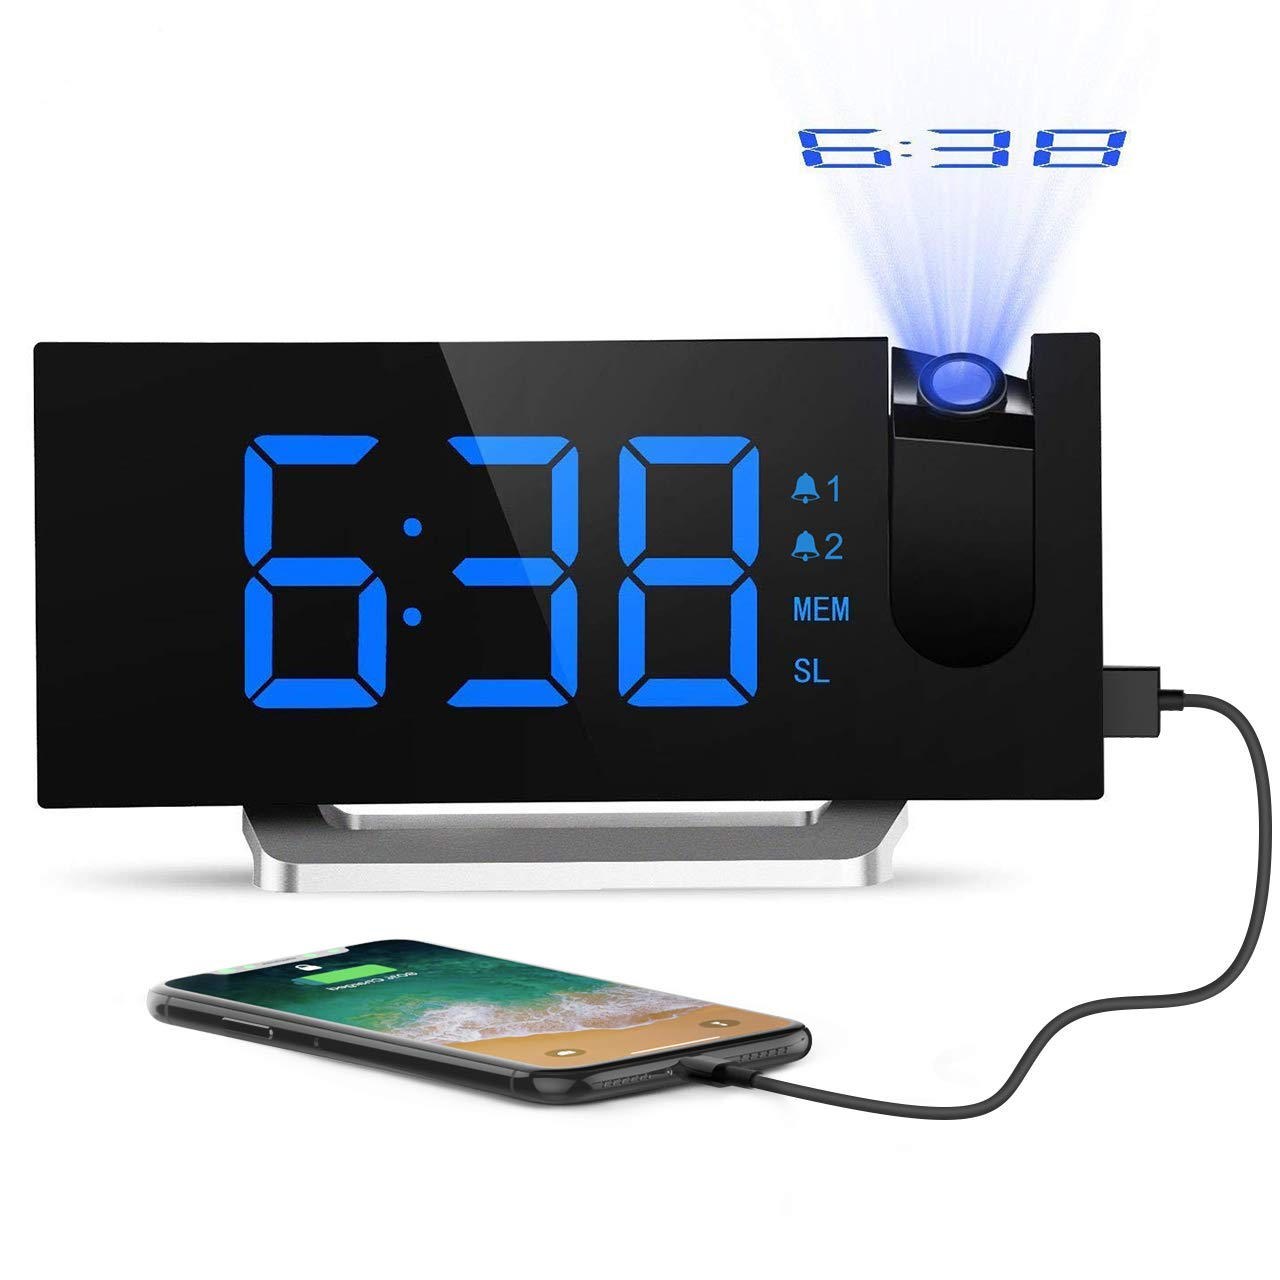 Mpow Projection [2018 Upgraded Version], Digital Alarm Clock with 2 inch LED Dimmer, 5 Display Brightness, 4 Adjustable Sounds, 3 Levels of Volume, 9-Minute Snooze Function, for Bedroom, Office, Blue, 1 PAMPHM353ABUK-UKVV2